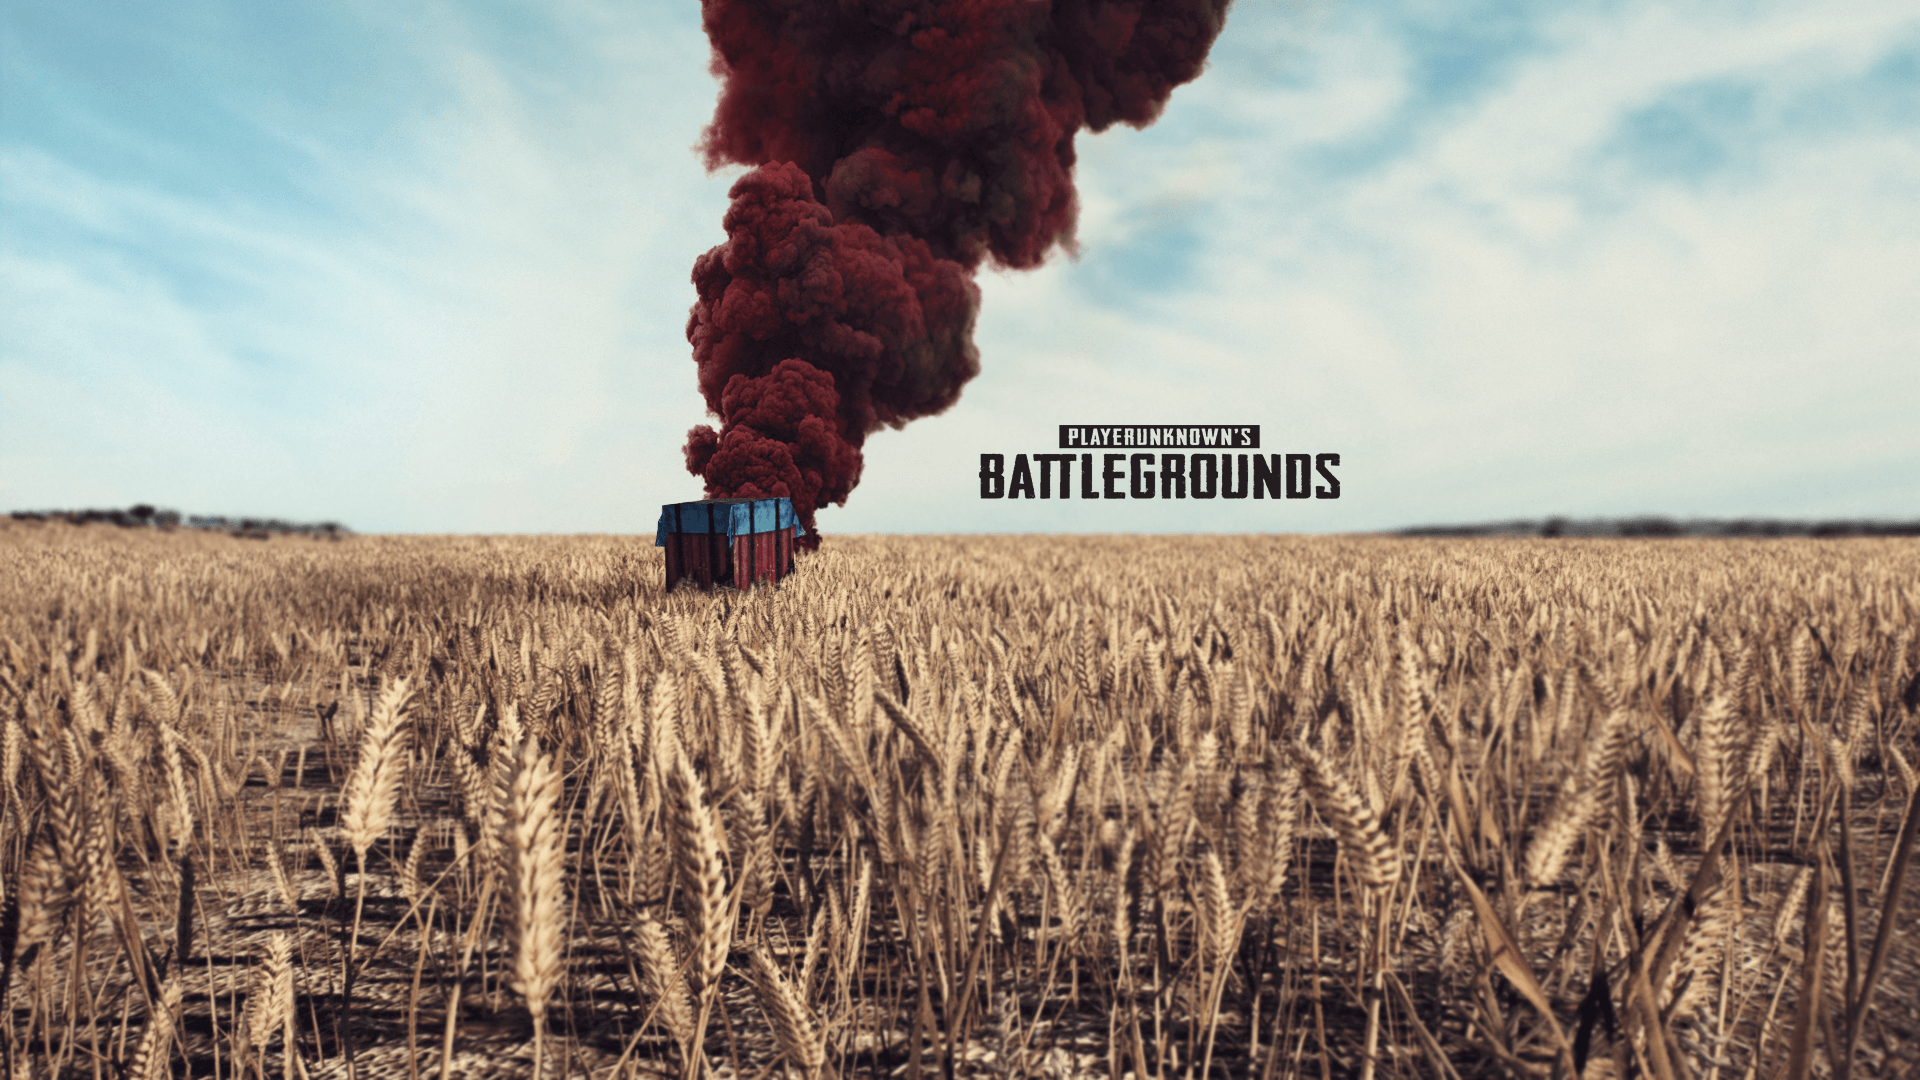 Playerunknown S Battlegrounds Wallpapers: PlayerUnknown's Battlegrounds HD Wallpapers